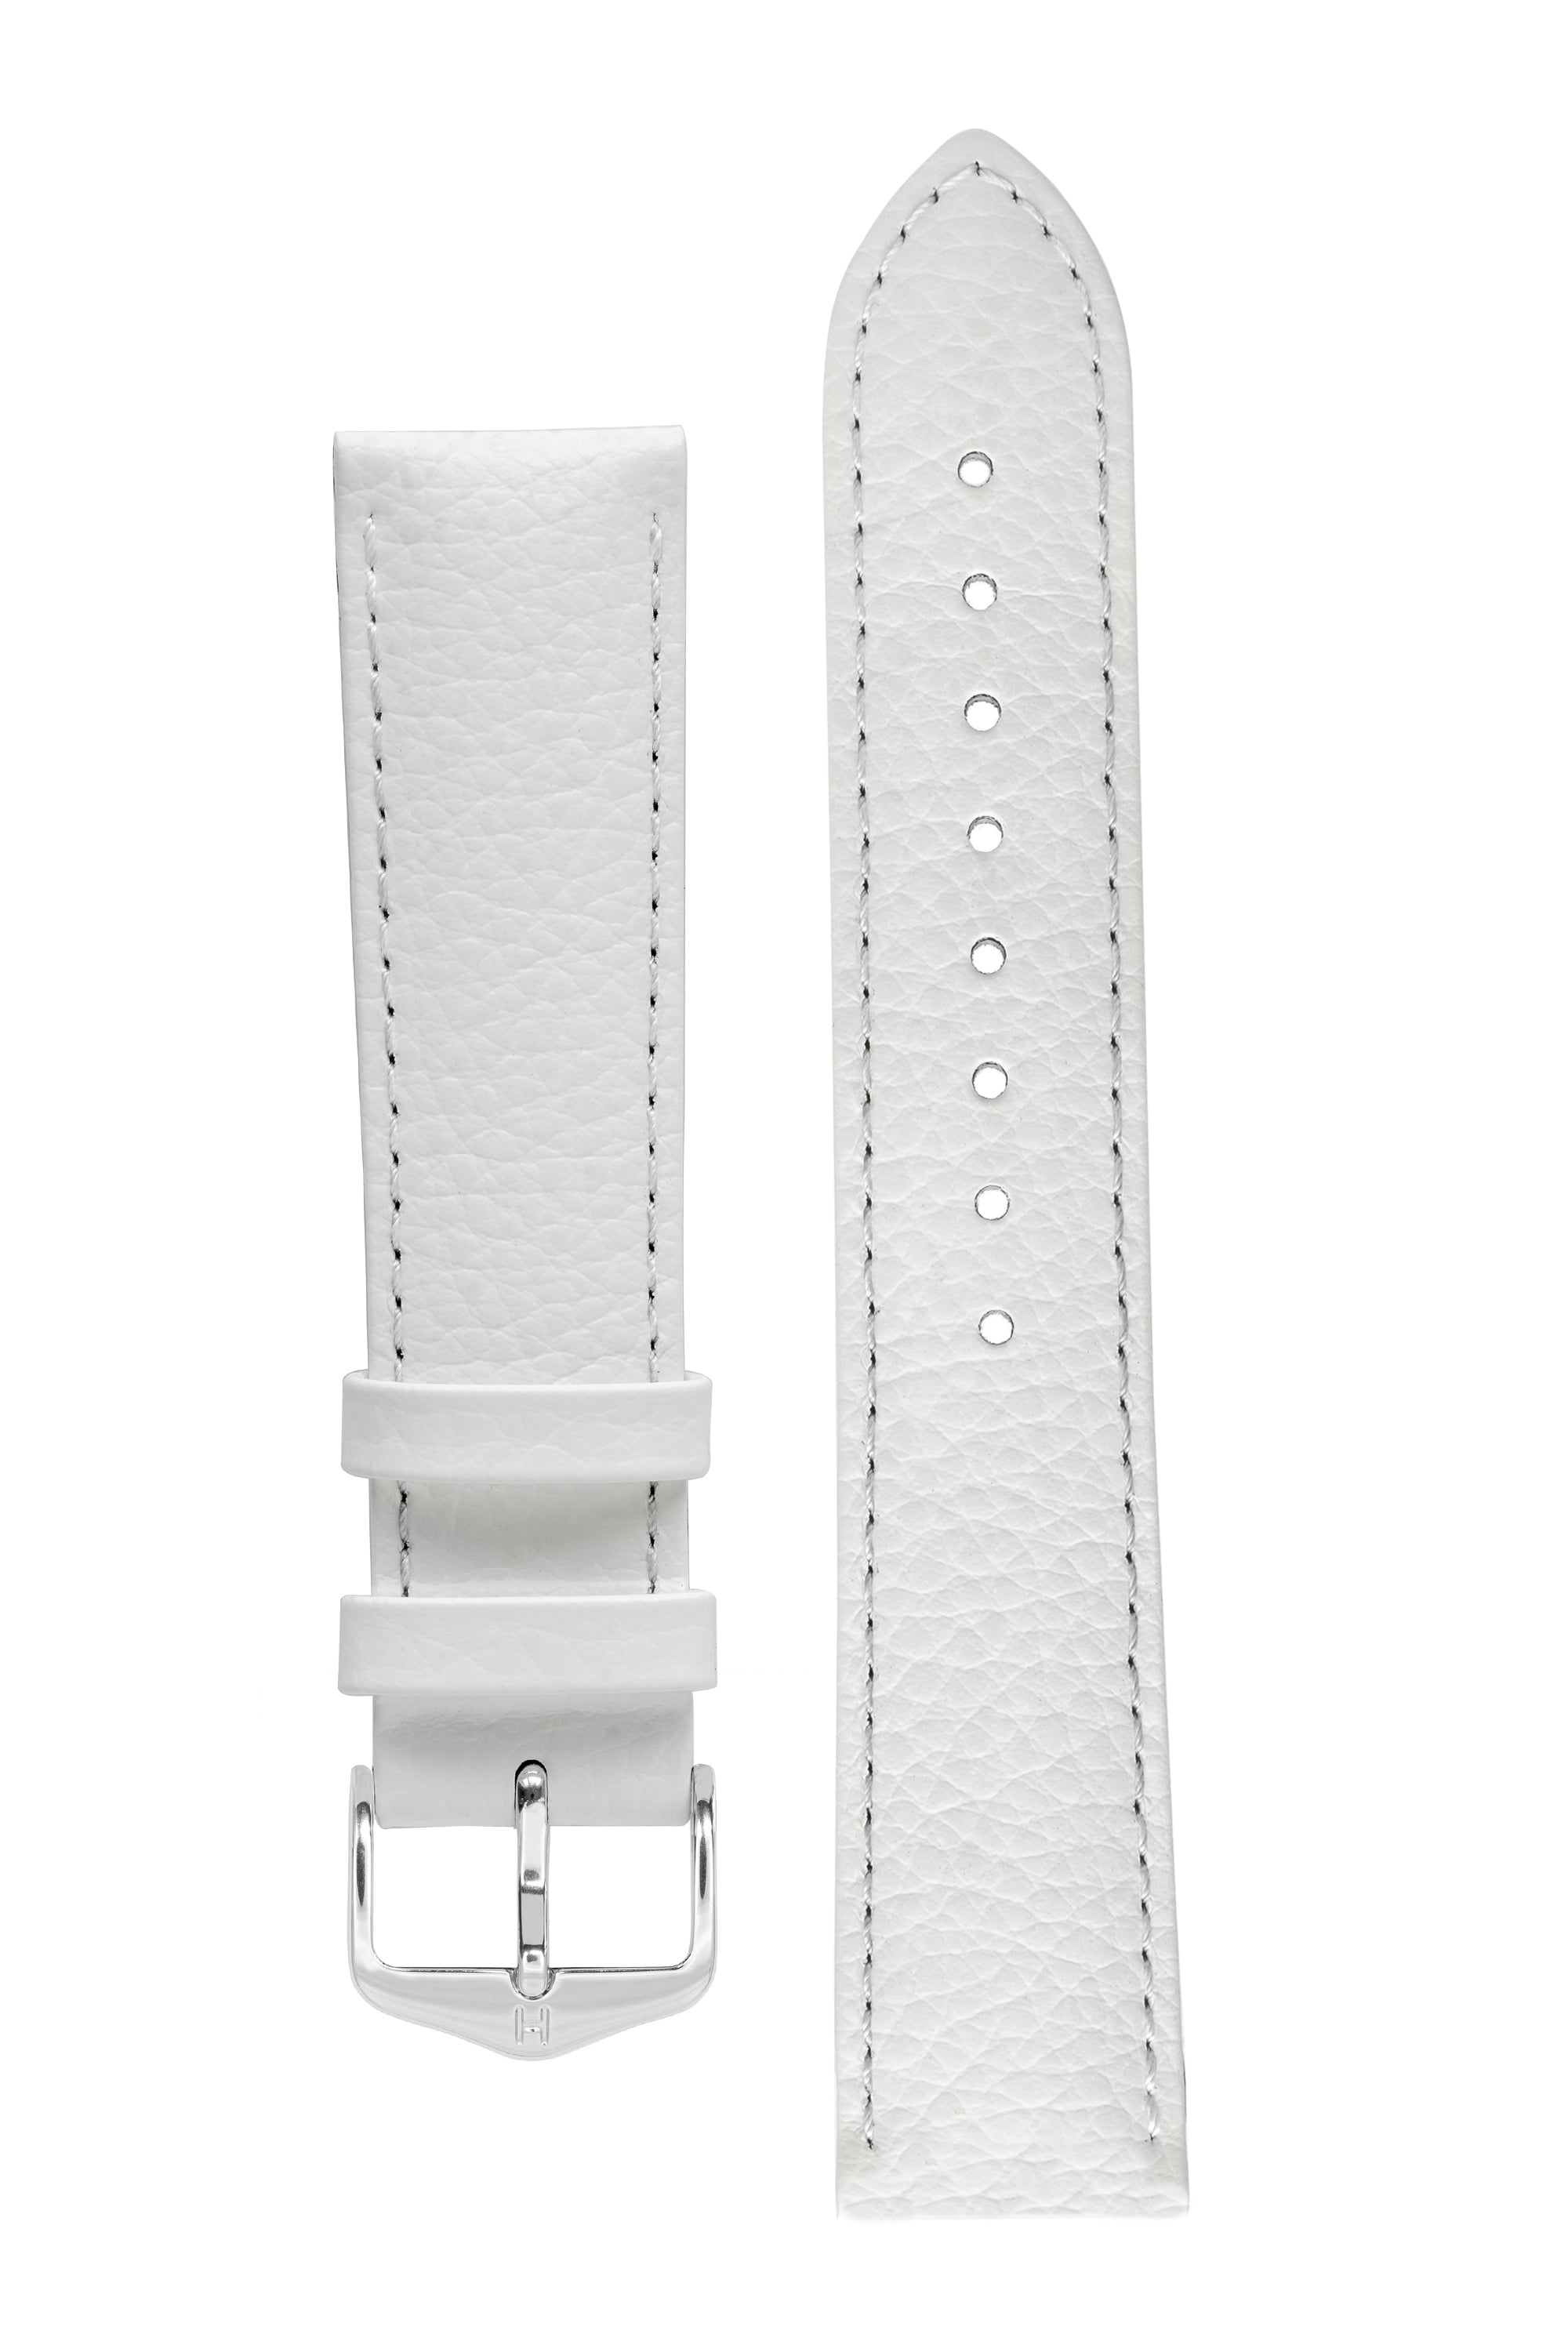 Hirsch KANSAS Buffalo-Embossed Calf Leather Watch Strap in WHITE